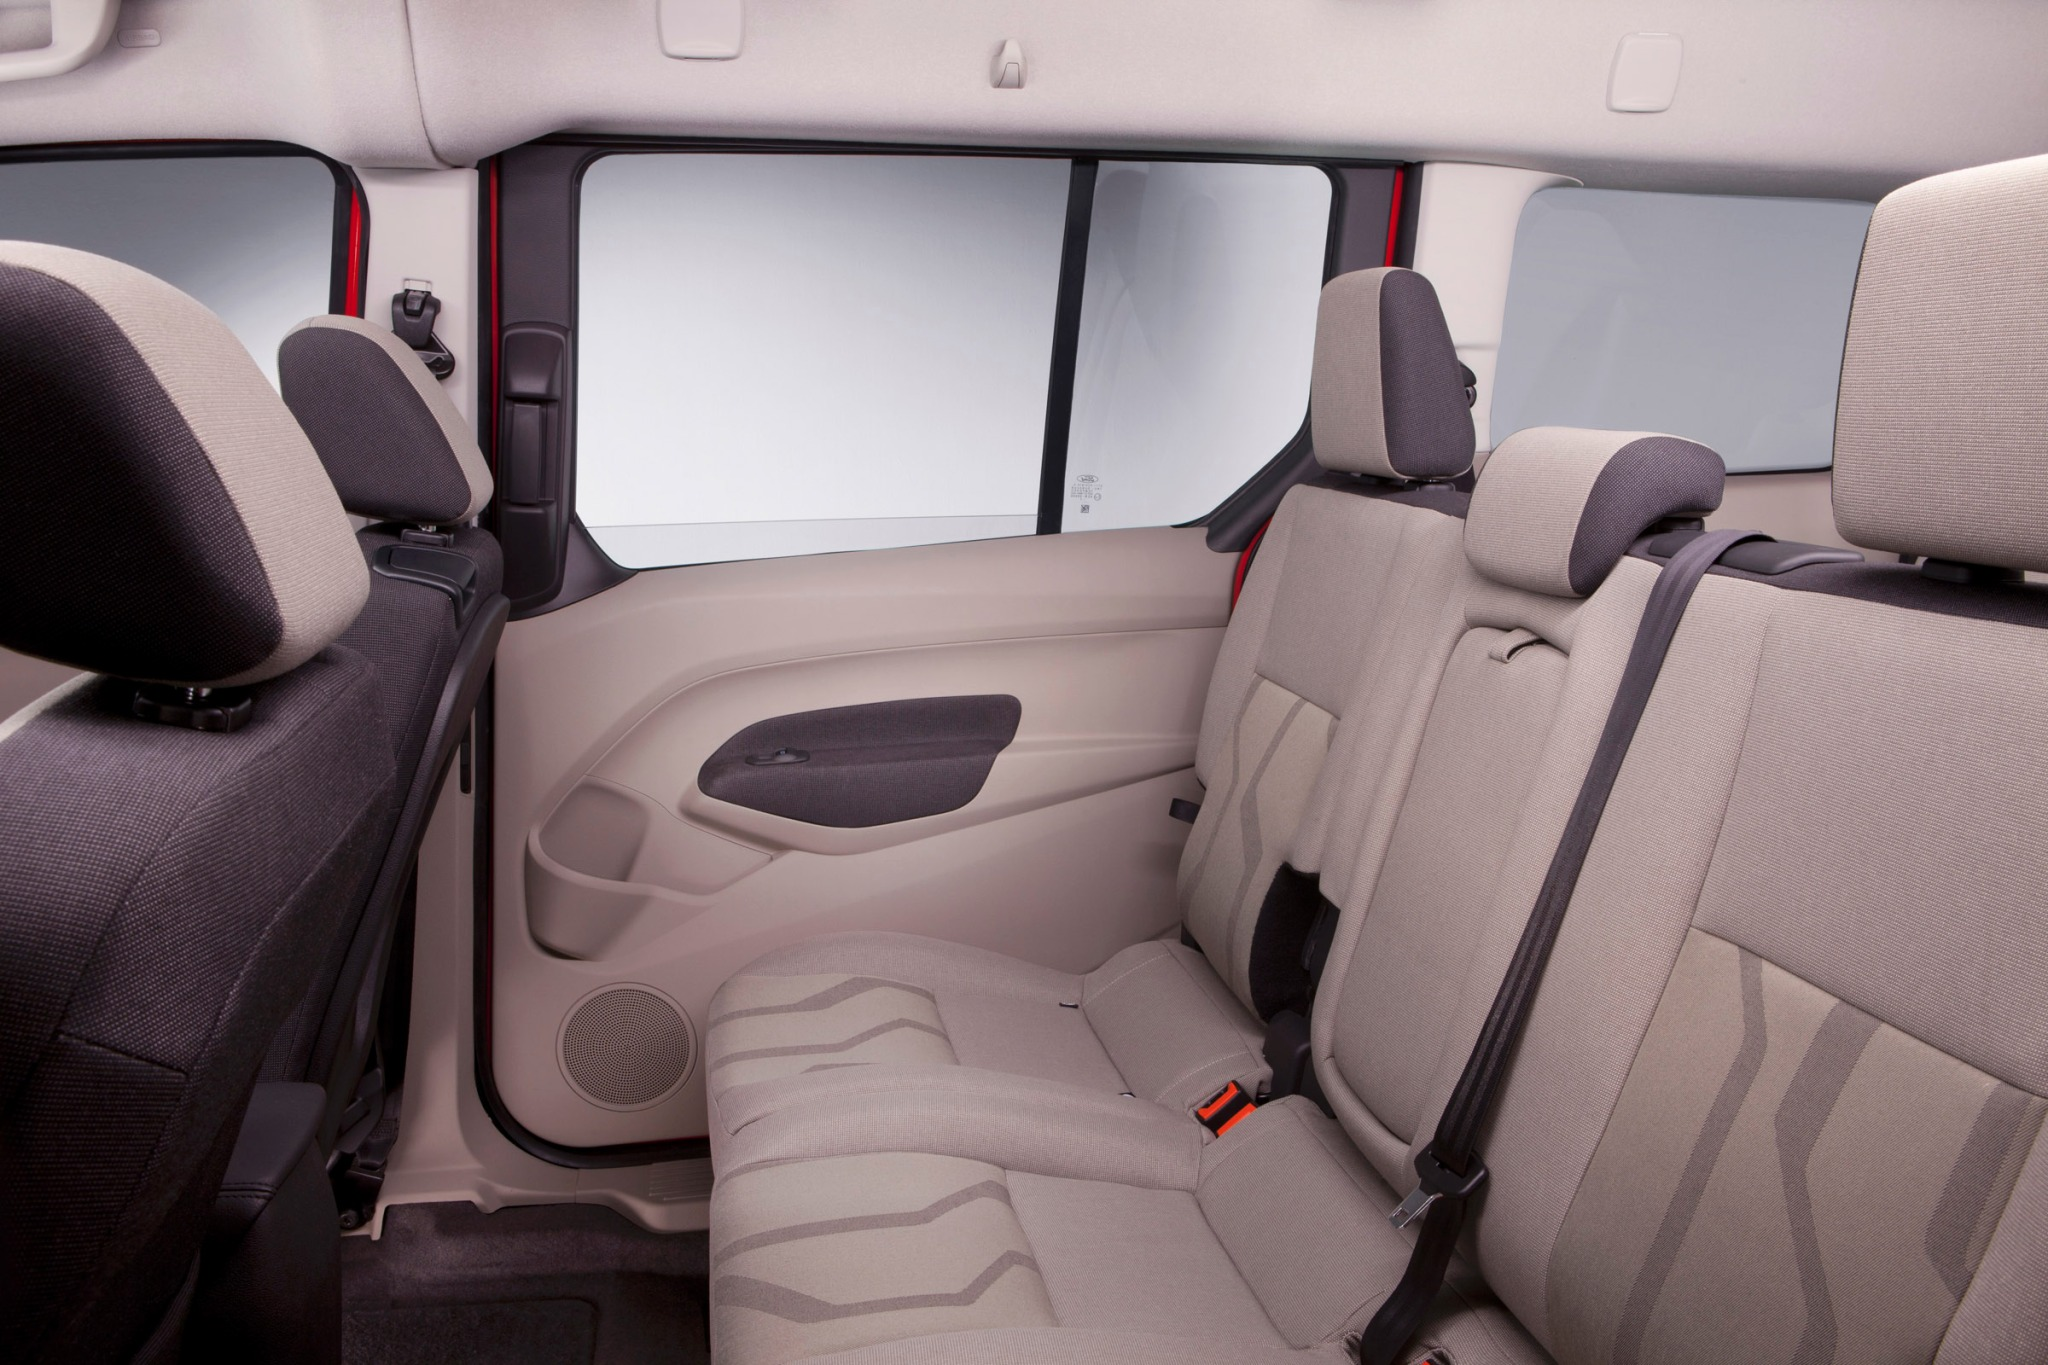 Ford Transit Wagon >> 2014 FORD TRANSIT CONNECT - Image #8